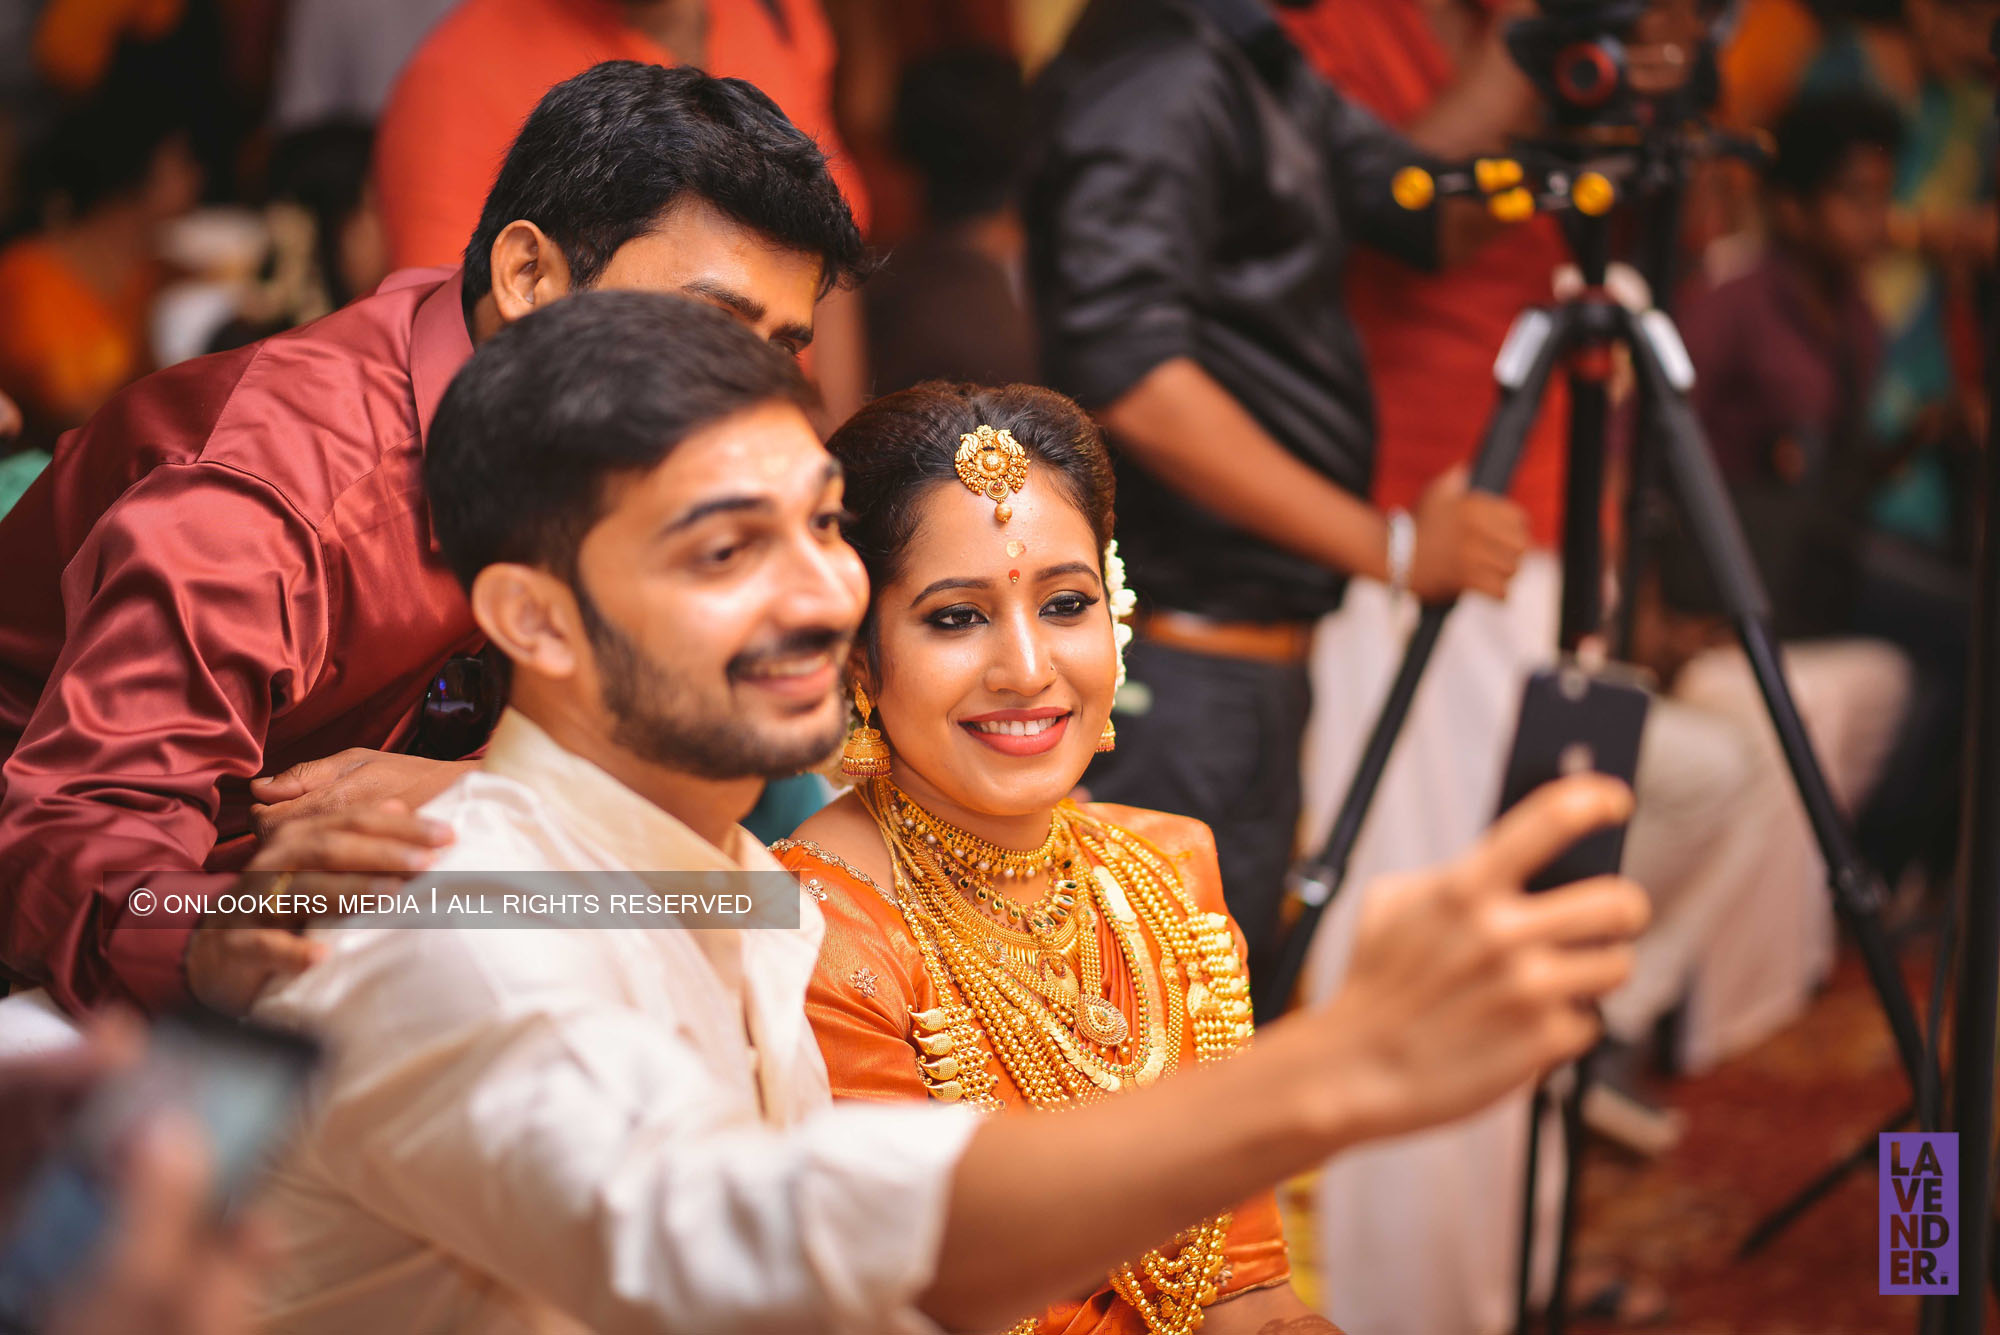 http://onlookersmedia.in/wp-content/uploads/2018/05/sreejith-vijay-wedding-stills-images-124.jpg